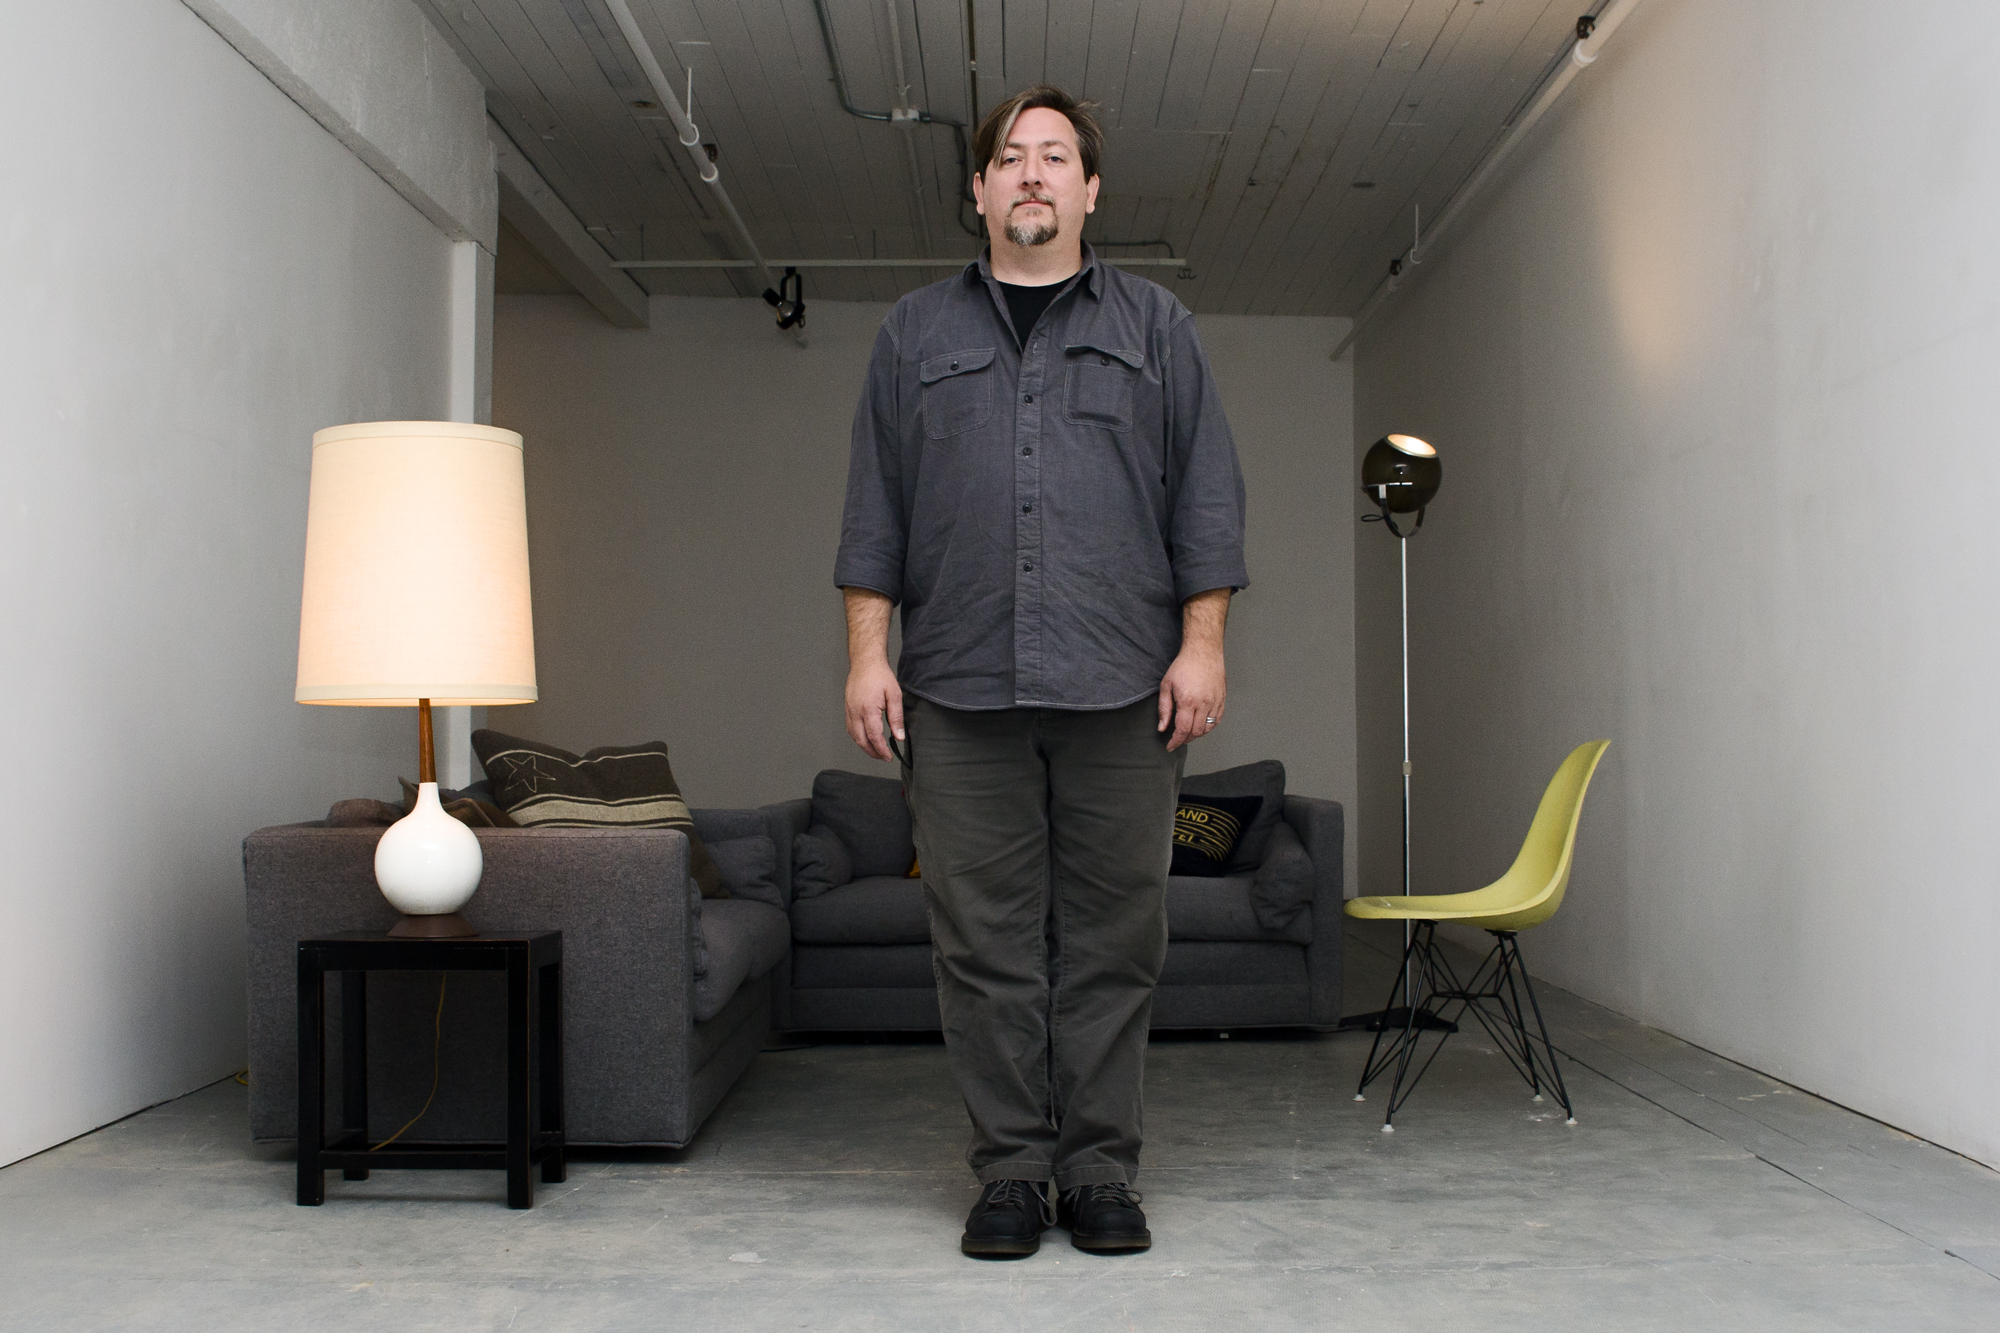 jon_scarper_in_furniture_room_portrait_web.jpg